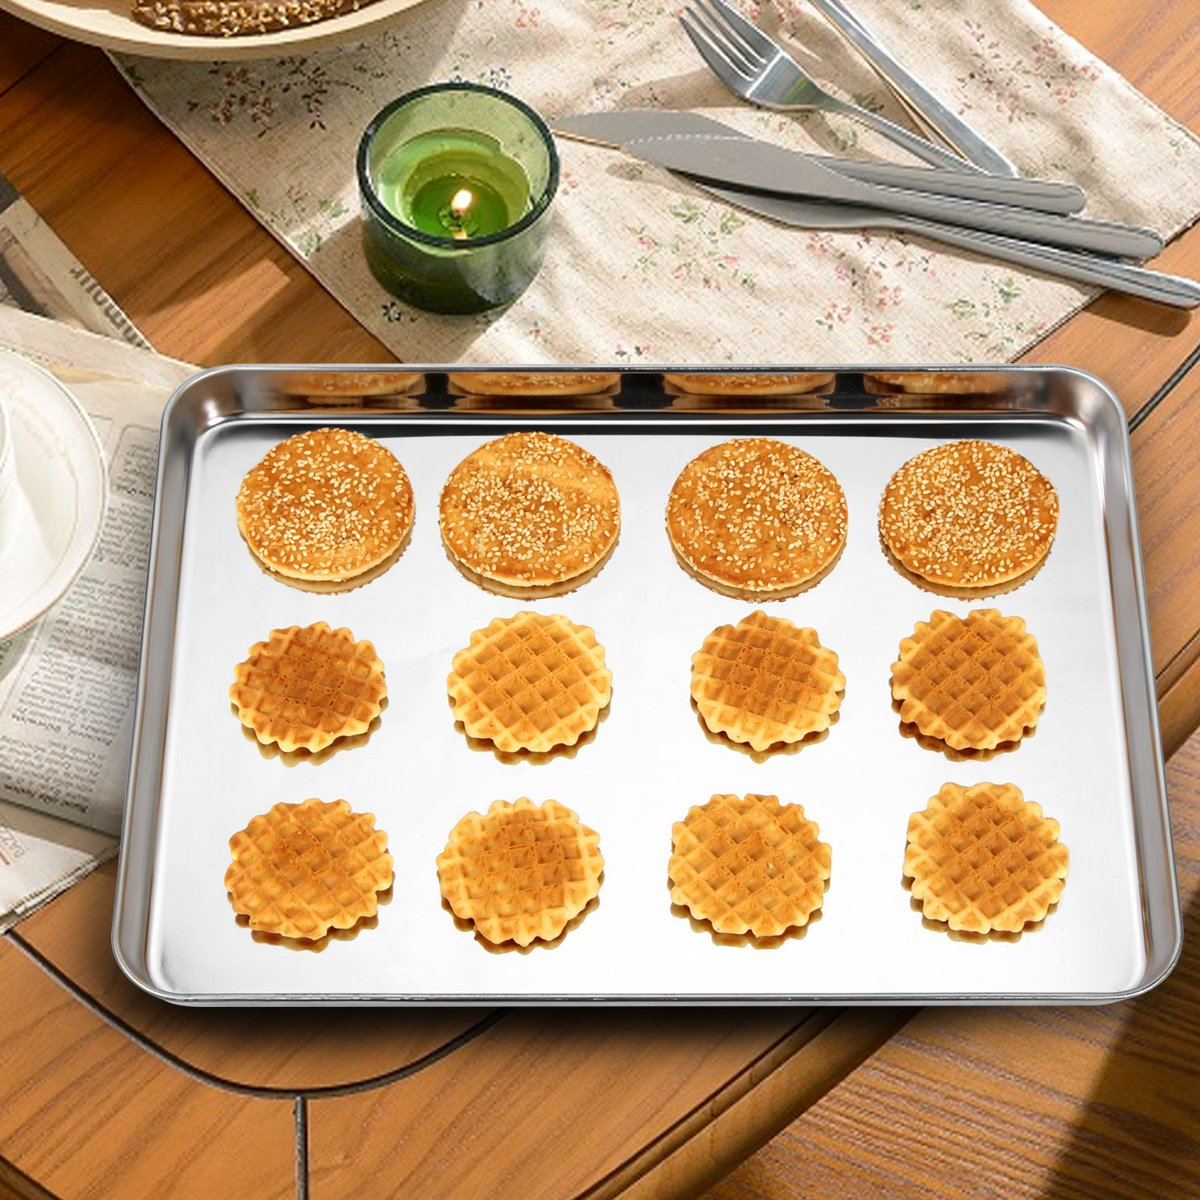 Baking Sheets Set of 3, HKJ Chef Baking Pans 3 Pieces & Stainless Steel Cookie Sheets & Toaster Oven Tray Pans, Non Toxic & Healthy, Mirror & Easy Clean by HKJ Chef (Image #6)